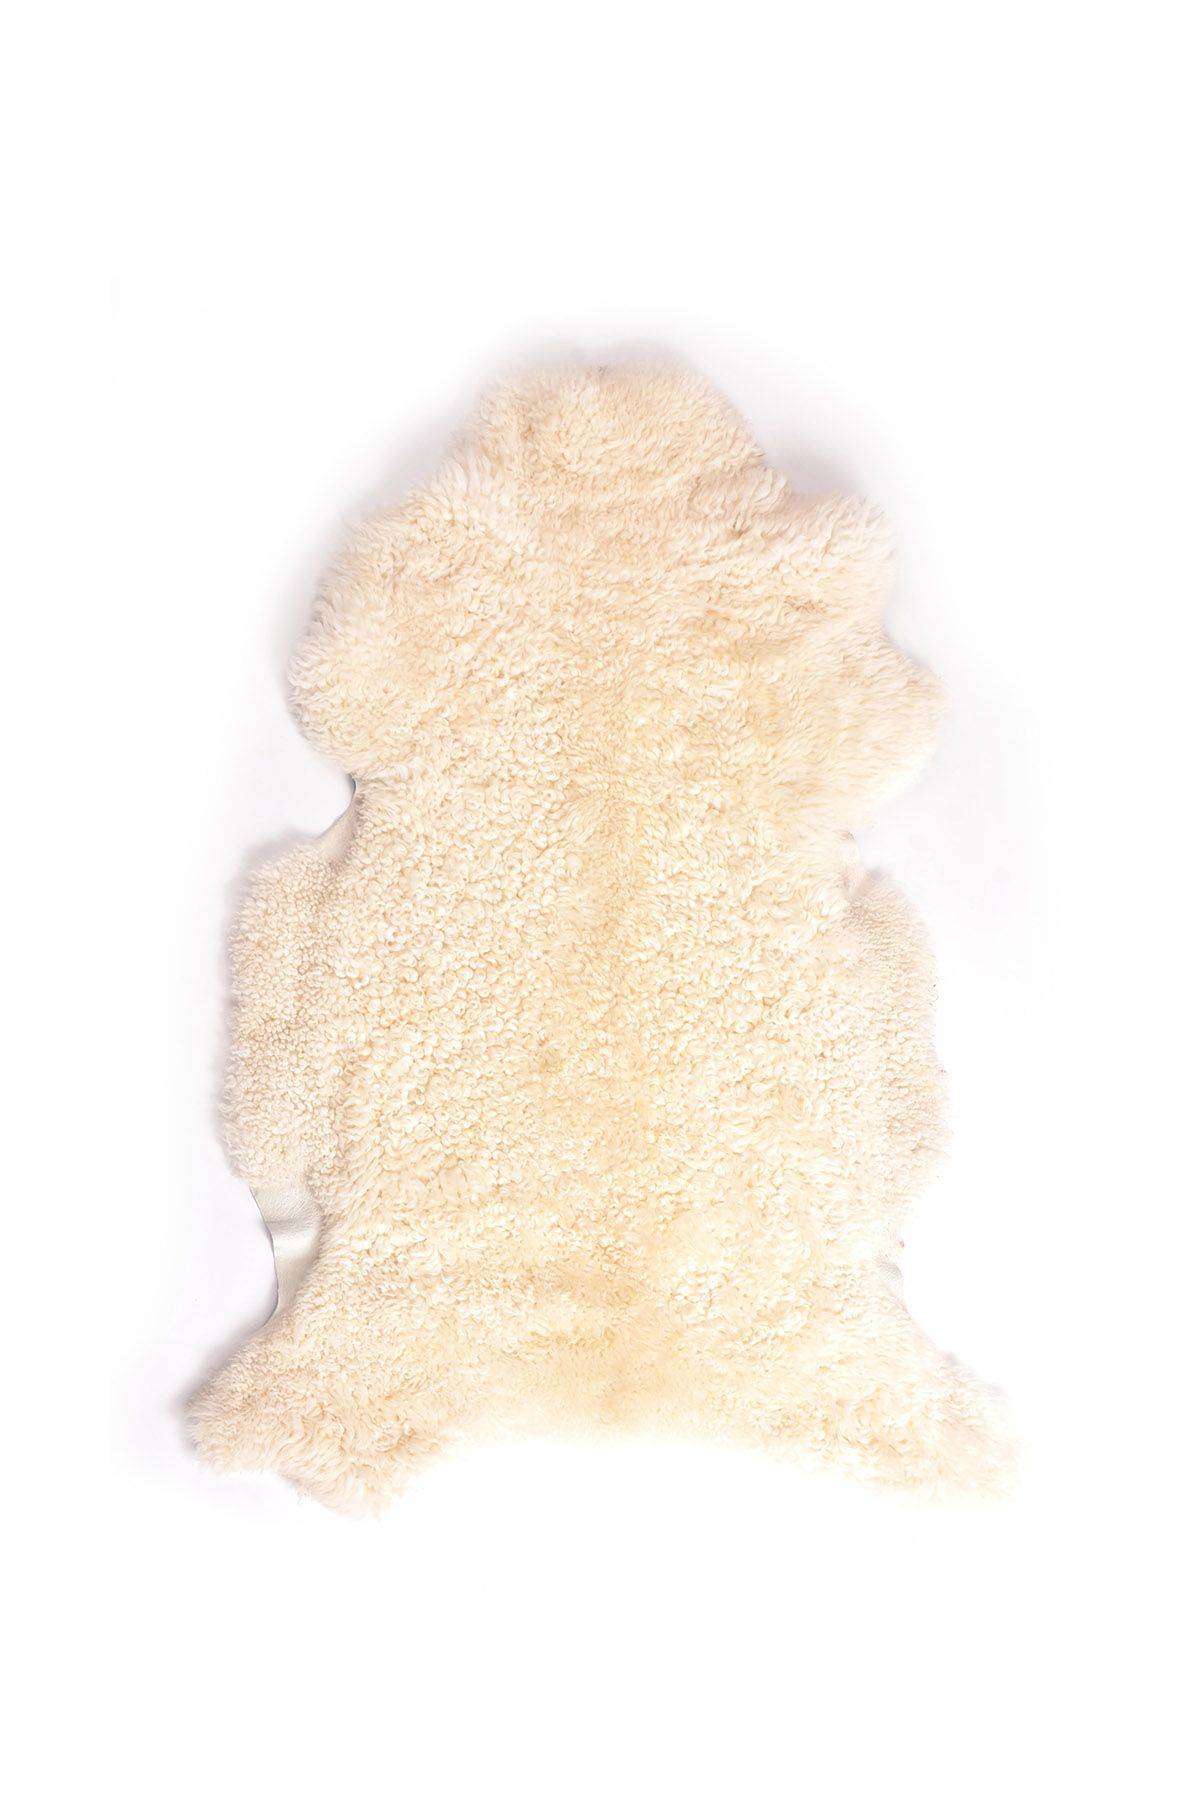 Erdogan Deri Decorative Sheepskin Rug White